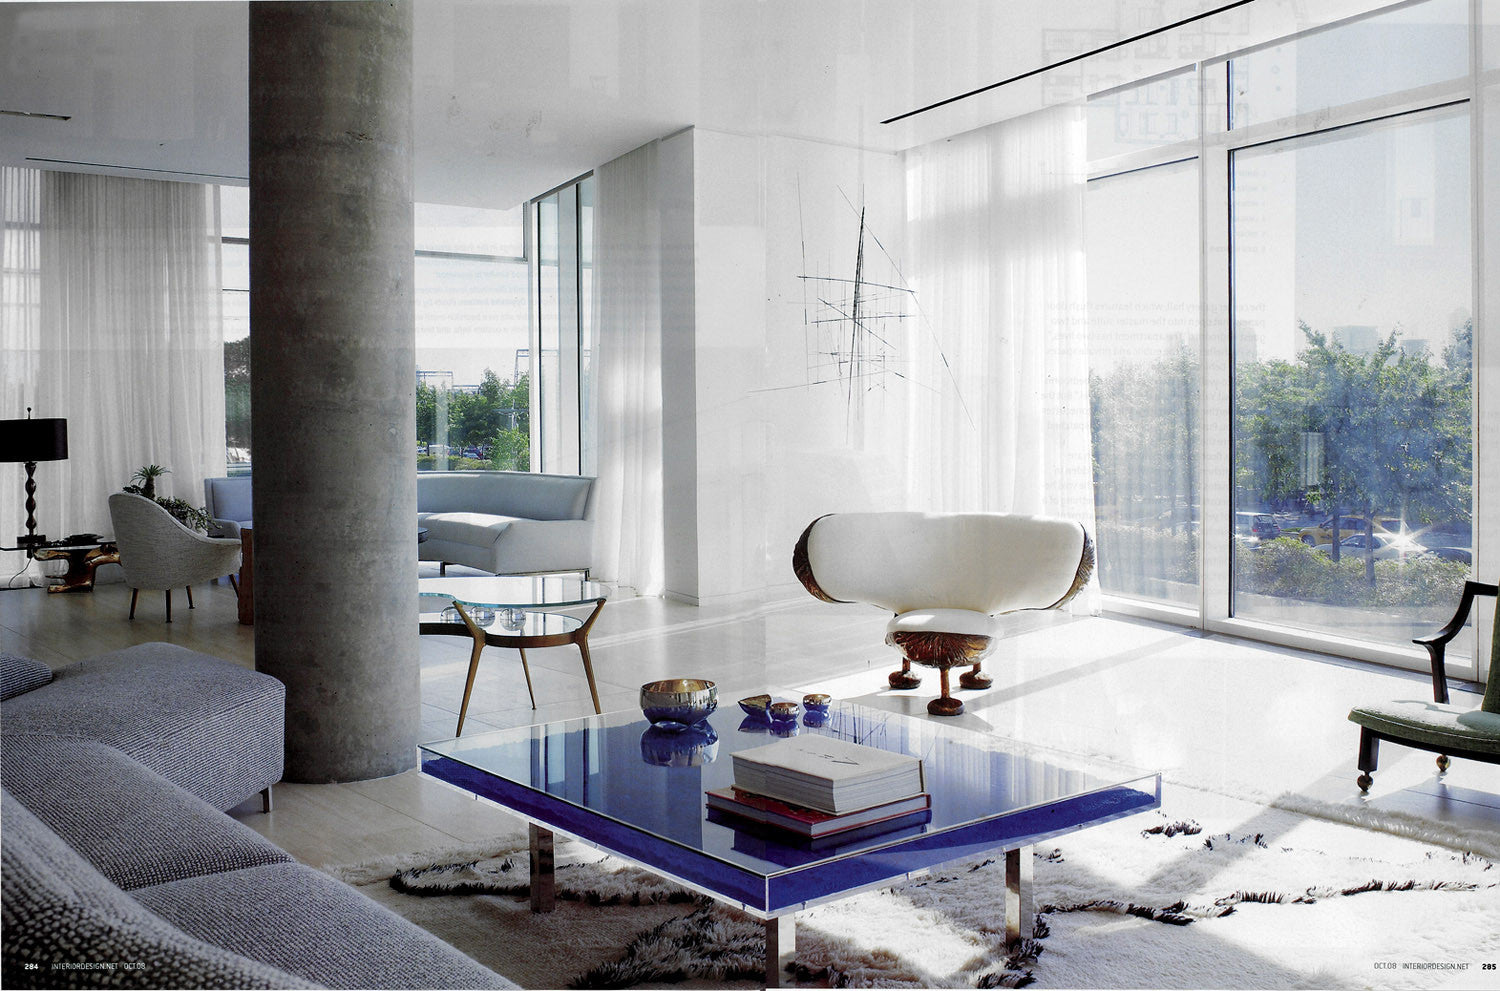 collect yves klein coffee tables worldwide shipping. Black Bedroom Furniture Sets. Home Design Ideas